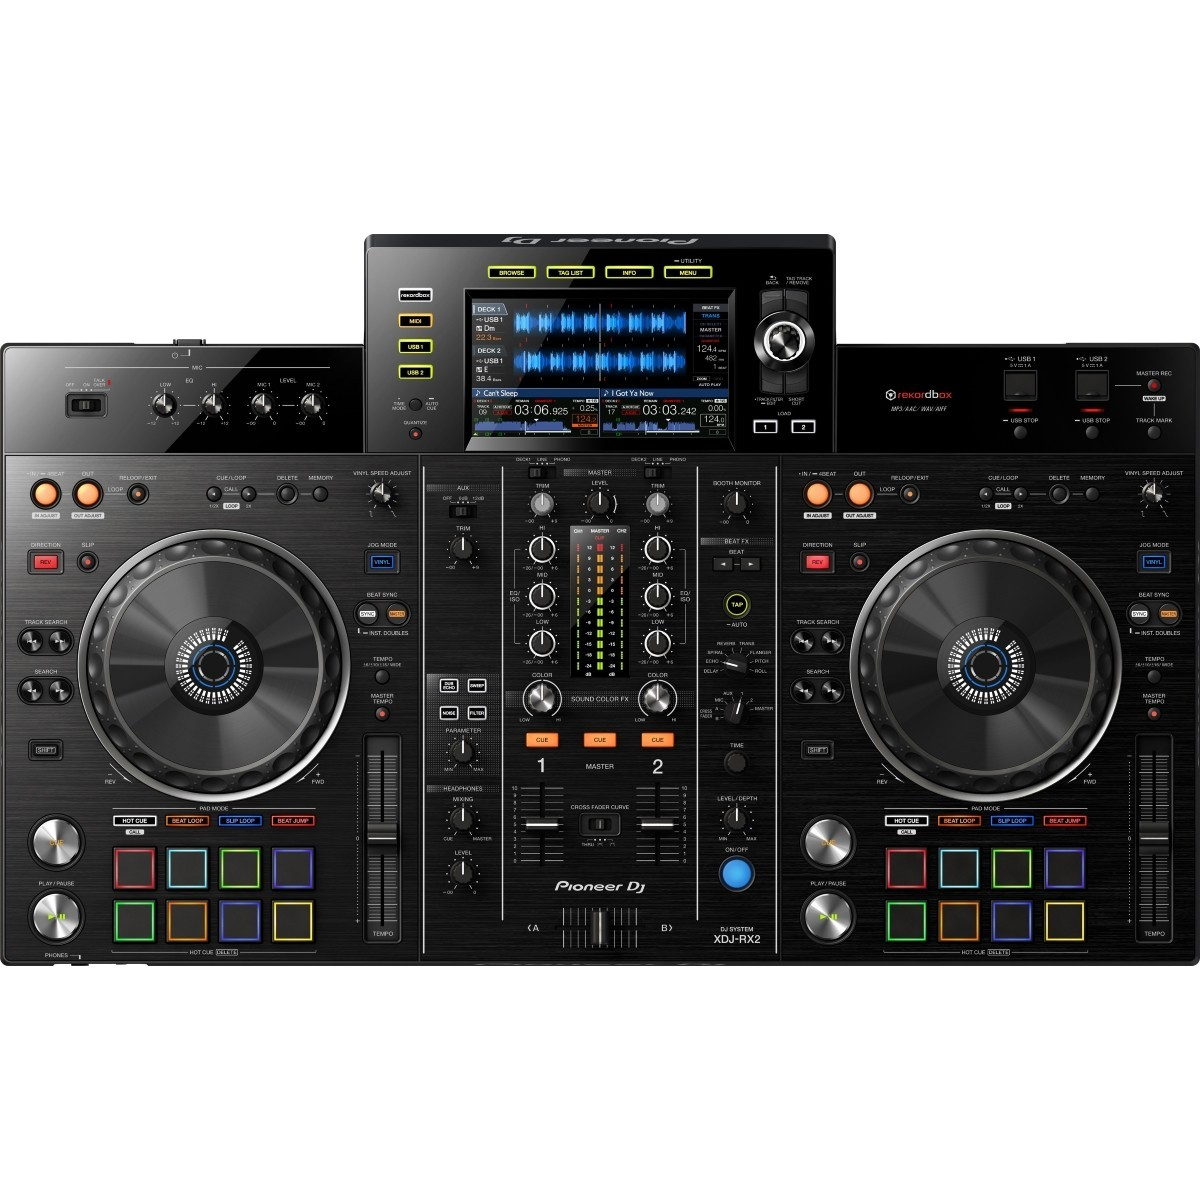 ALL IN ONE REKORDBOX SYSTEM XDJ-RX2